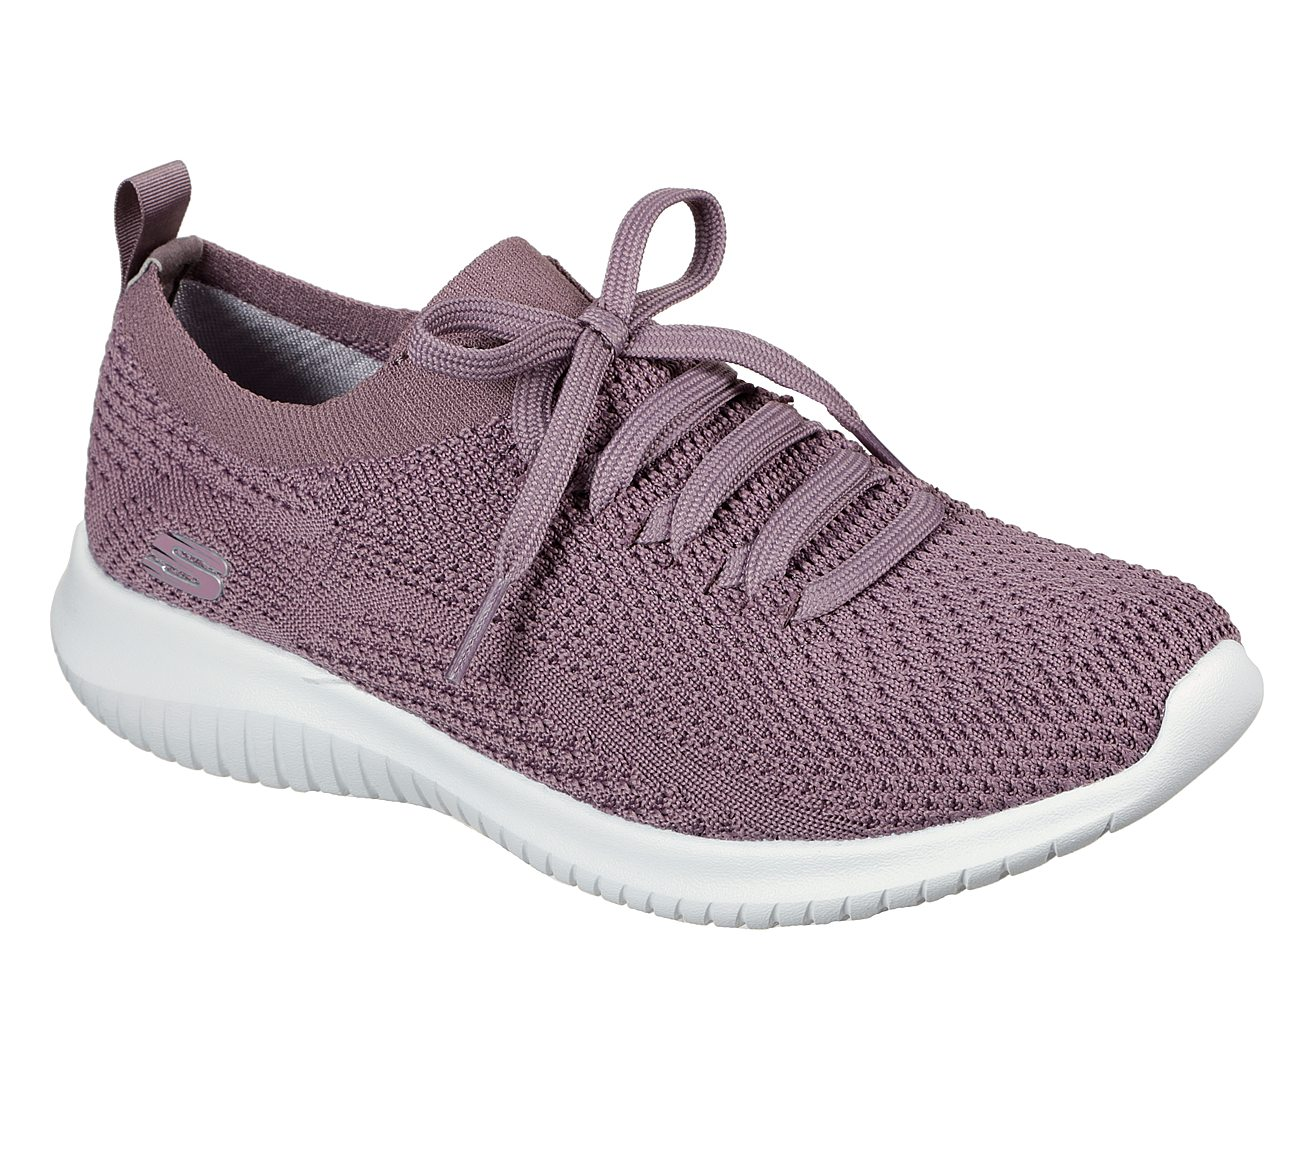 c7551686e130 Buy SKECHERS Ultra Flex - Statements SKECHERS Sport Shoes only £63.00